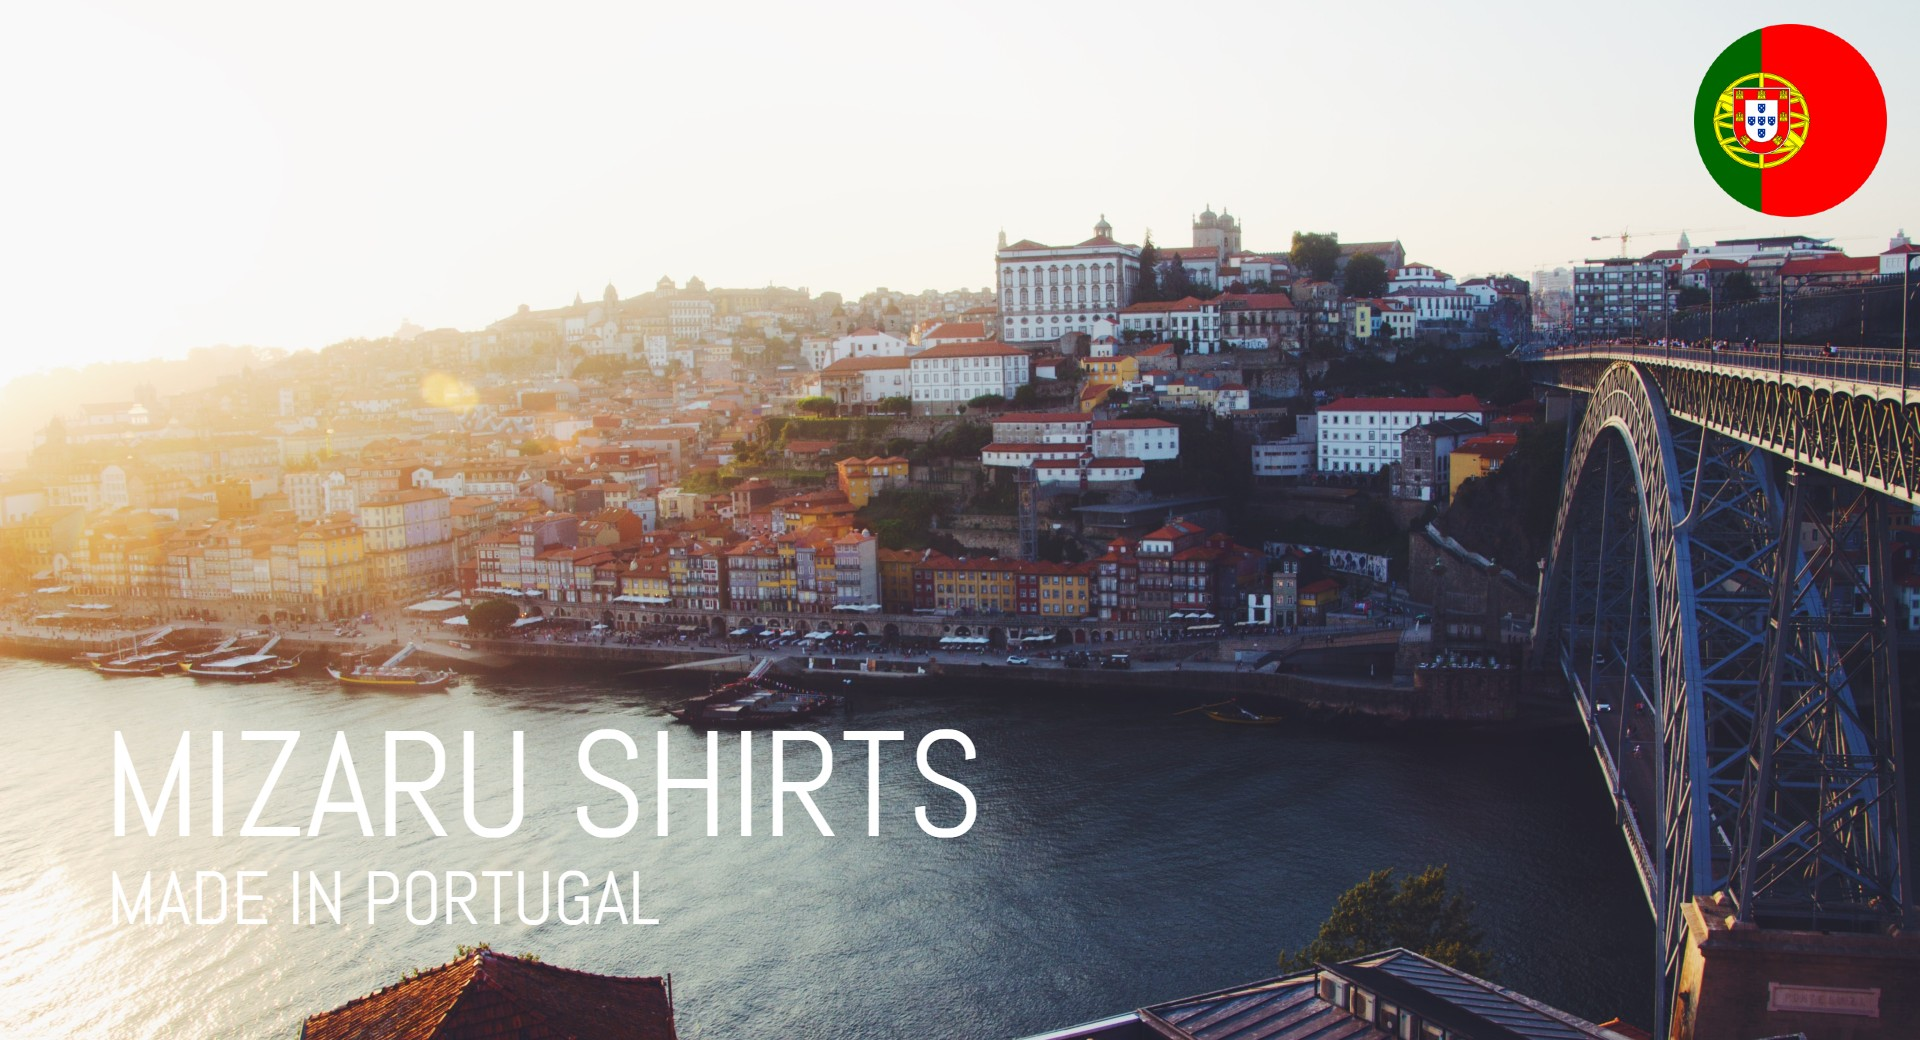 mizaru-shirts-made-in-portugal